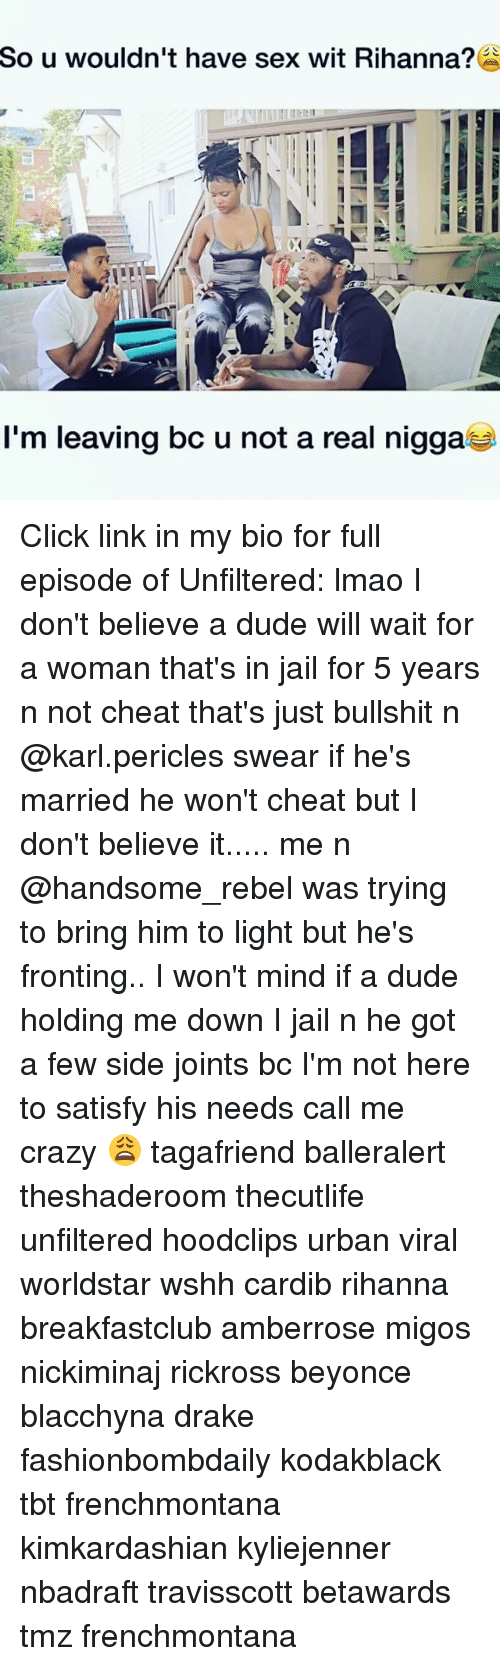 Karling: So  u wouldn't have sex wit Rihanna?  I'm leaving bc u not a real nigga Click link in my bio for full episode of Unfiltered: lmao I don't believe a dude will wait for a woman that's in jail for 5 years n not cheat that's just bullshit n @karl.pericles swear if he's married he won't cheat but I don't believe it..... me n @handsome_rebel was trying to bring him to light but he's fronting.. I won't mind if a dude holding me down I jail n he got a few side joints bc I'm not here to satisfy his needs call me crazy 😩 tagafriend balleralert theshaderoom thecutlife unfiltered hoodclips urban viral worldstar wshh cardib rihanna breakfastclub amberrose migos nickiminaj rickross beyonce blacchyna drake fashionbombdaily kodakblack tbt frenchmontana kimkardashian kyliejenner nbadraft travisscott betawards tmz frenchmontana